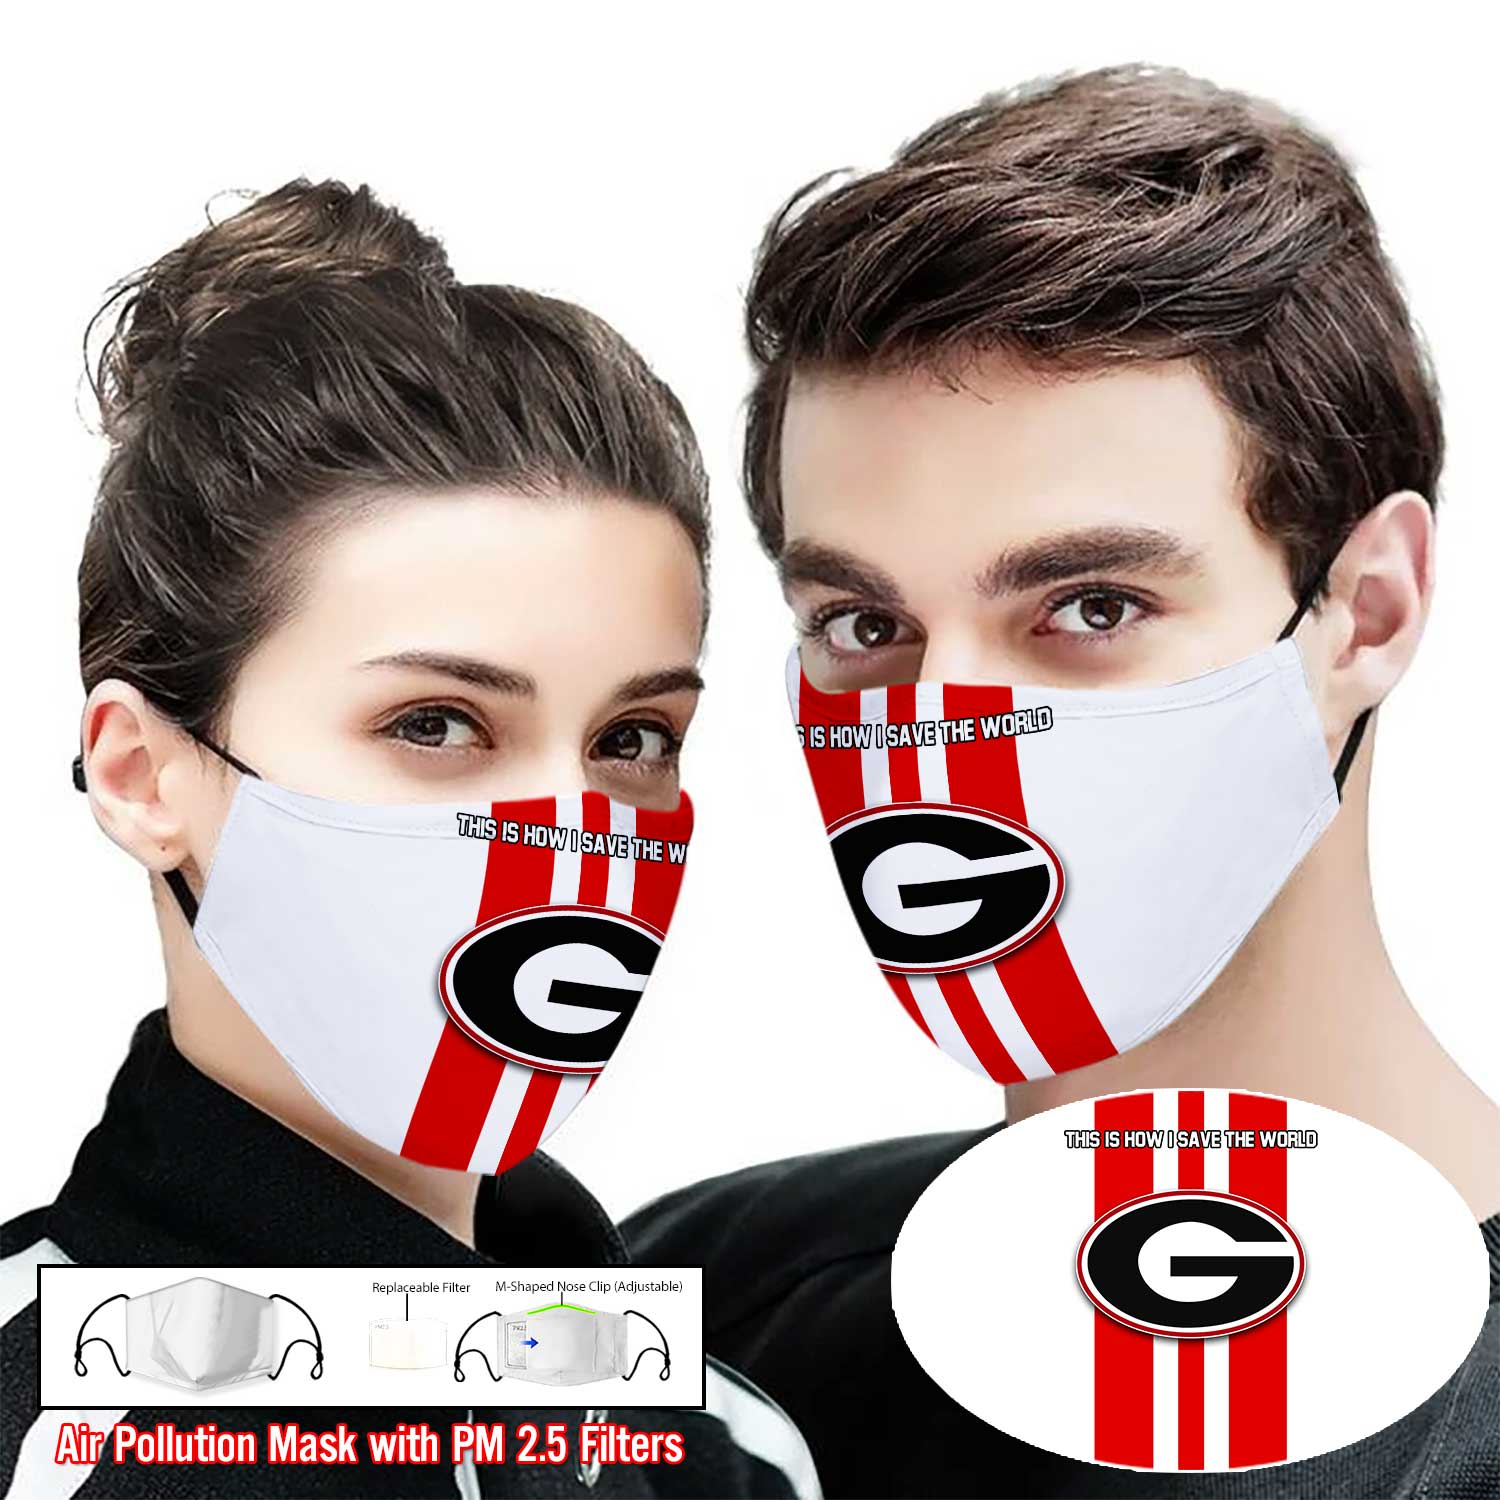 Georgia bulldogs football this is how i save the world face mask 1